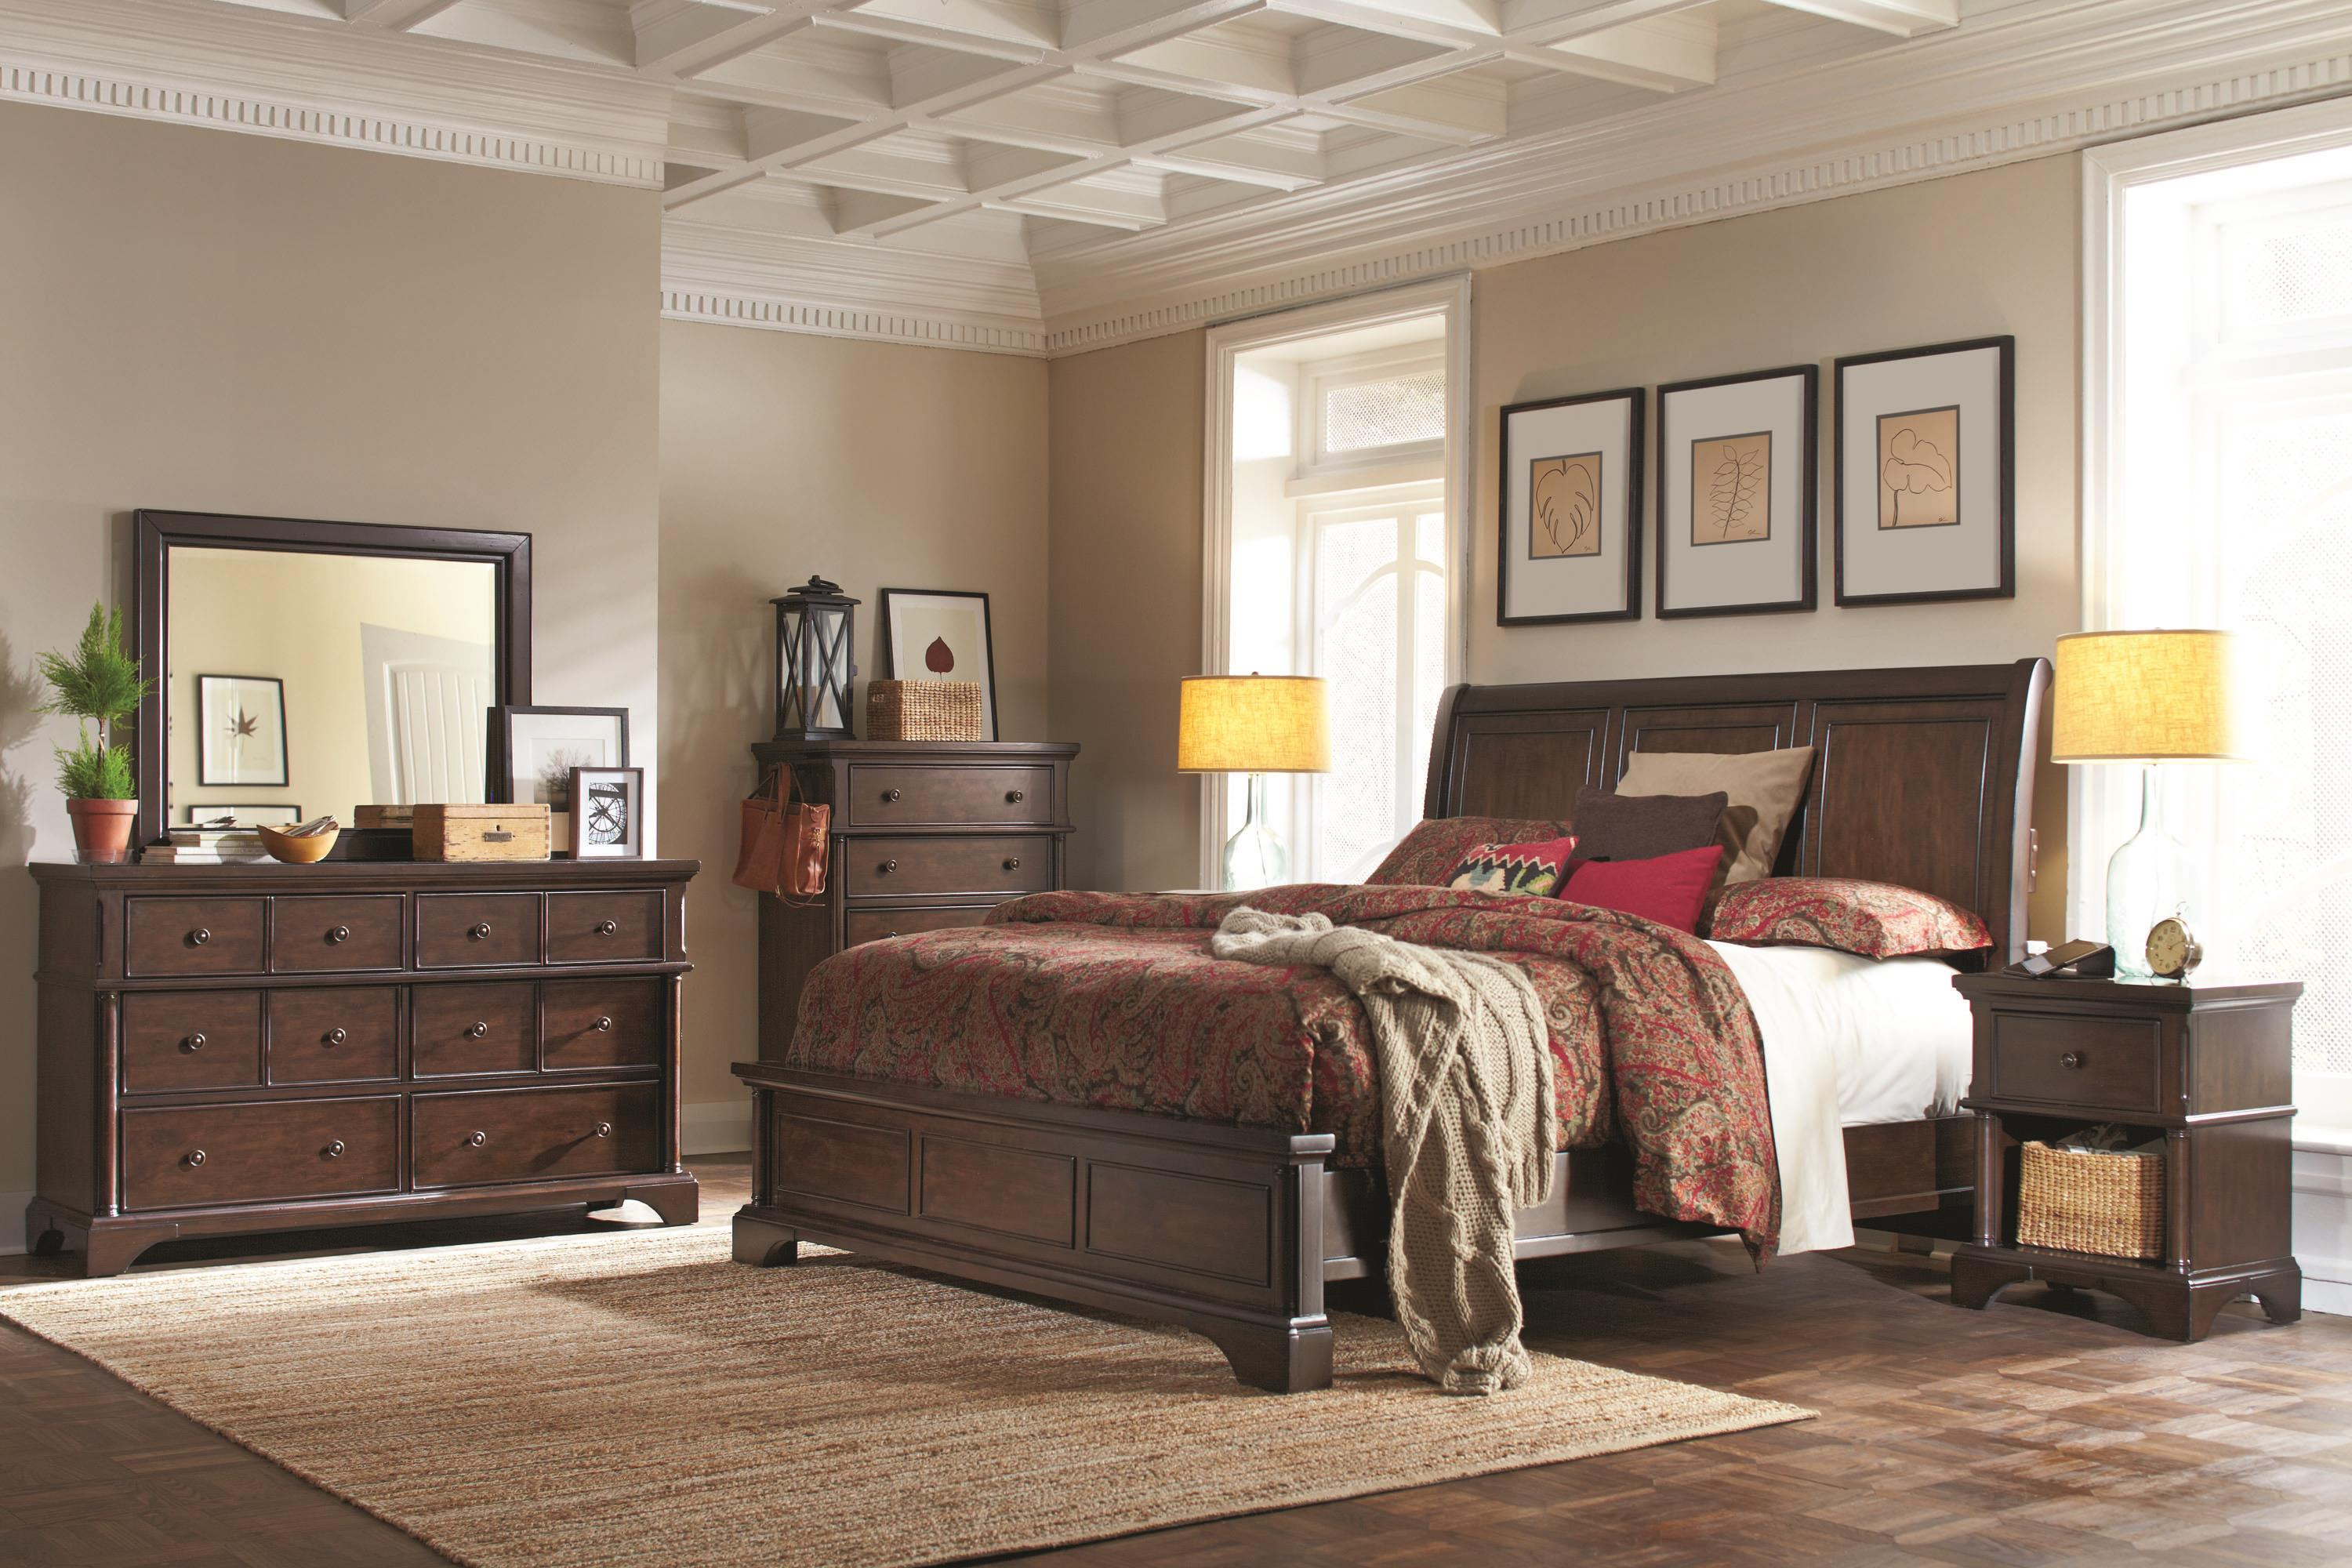 Aspenhome Bancroft Queen Bedroom Group - Item Number: I08 Q Bedroom Group 1